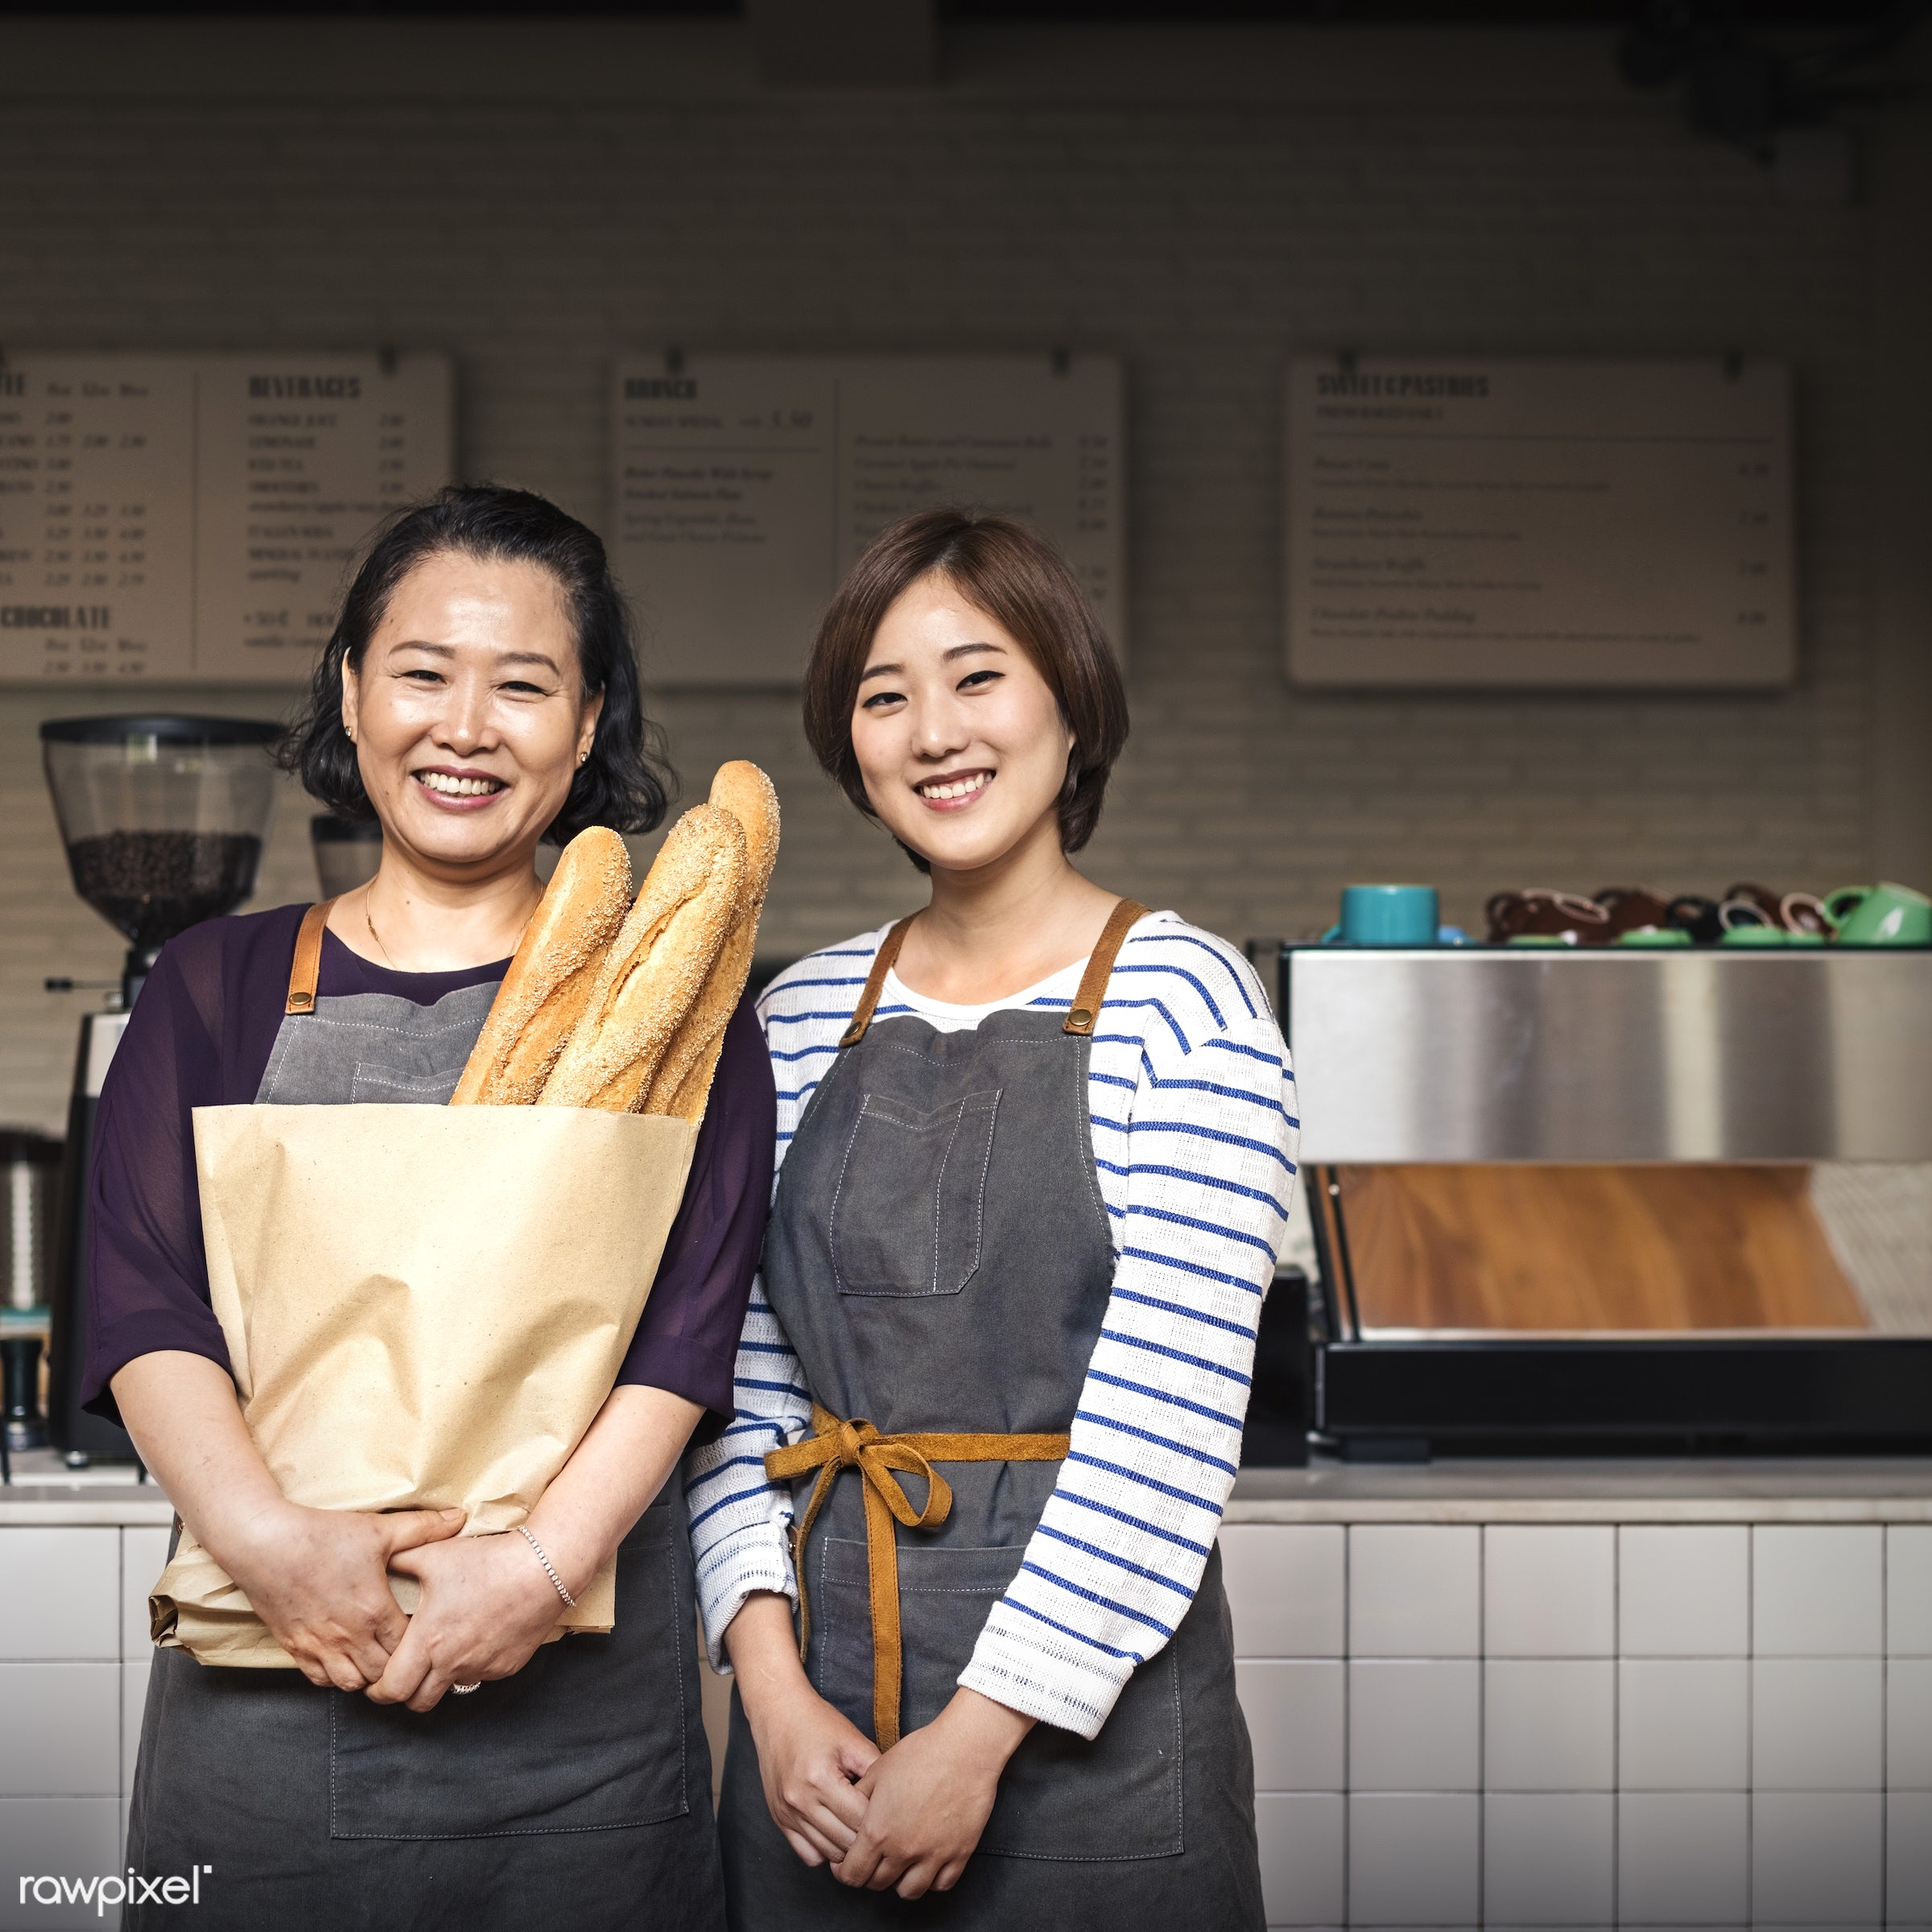 apron, asian ethnicity, bag, baguette, bake, baker, bakery, baking, bistro, bread, cafe, carbohydrates, carbs, coffee shop,...